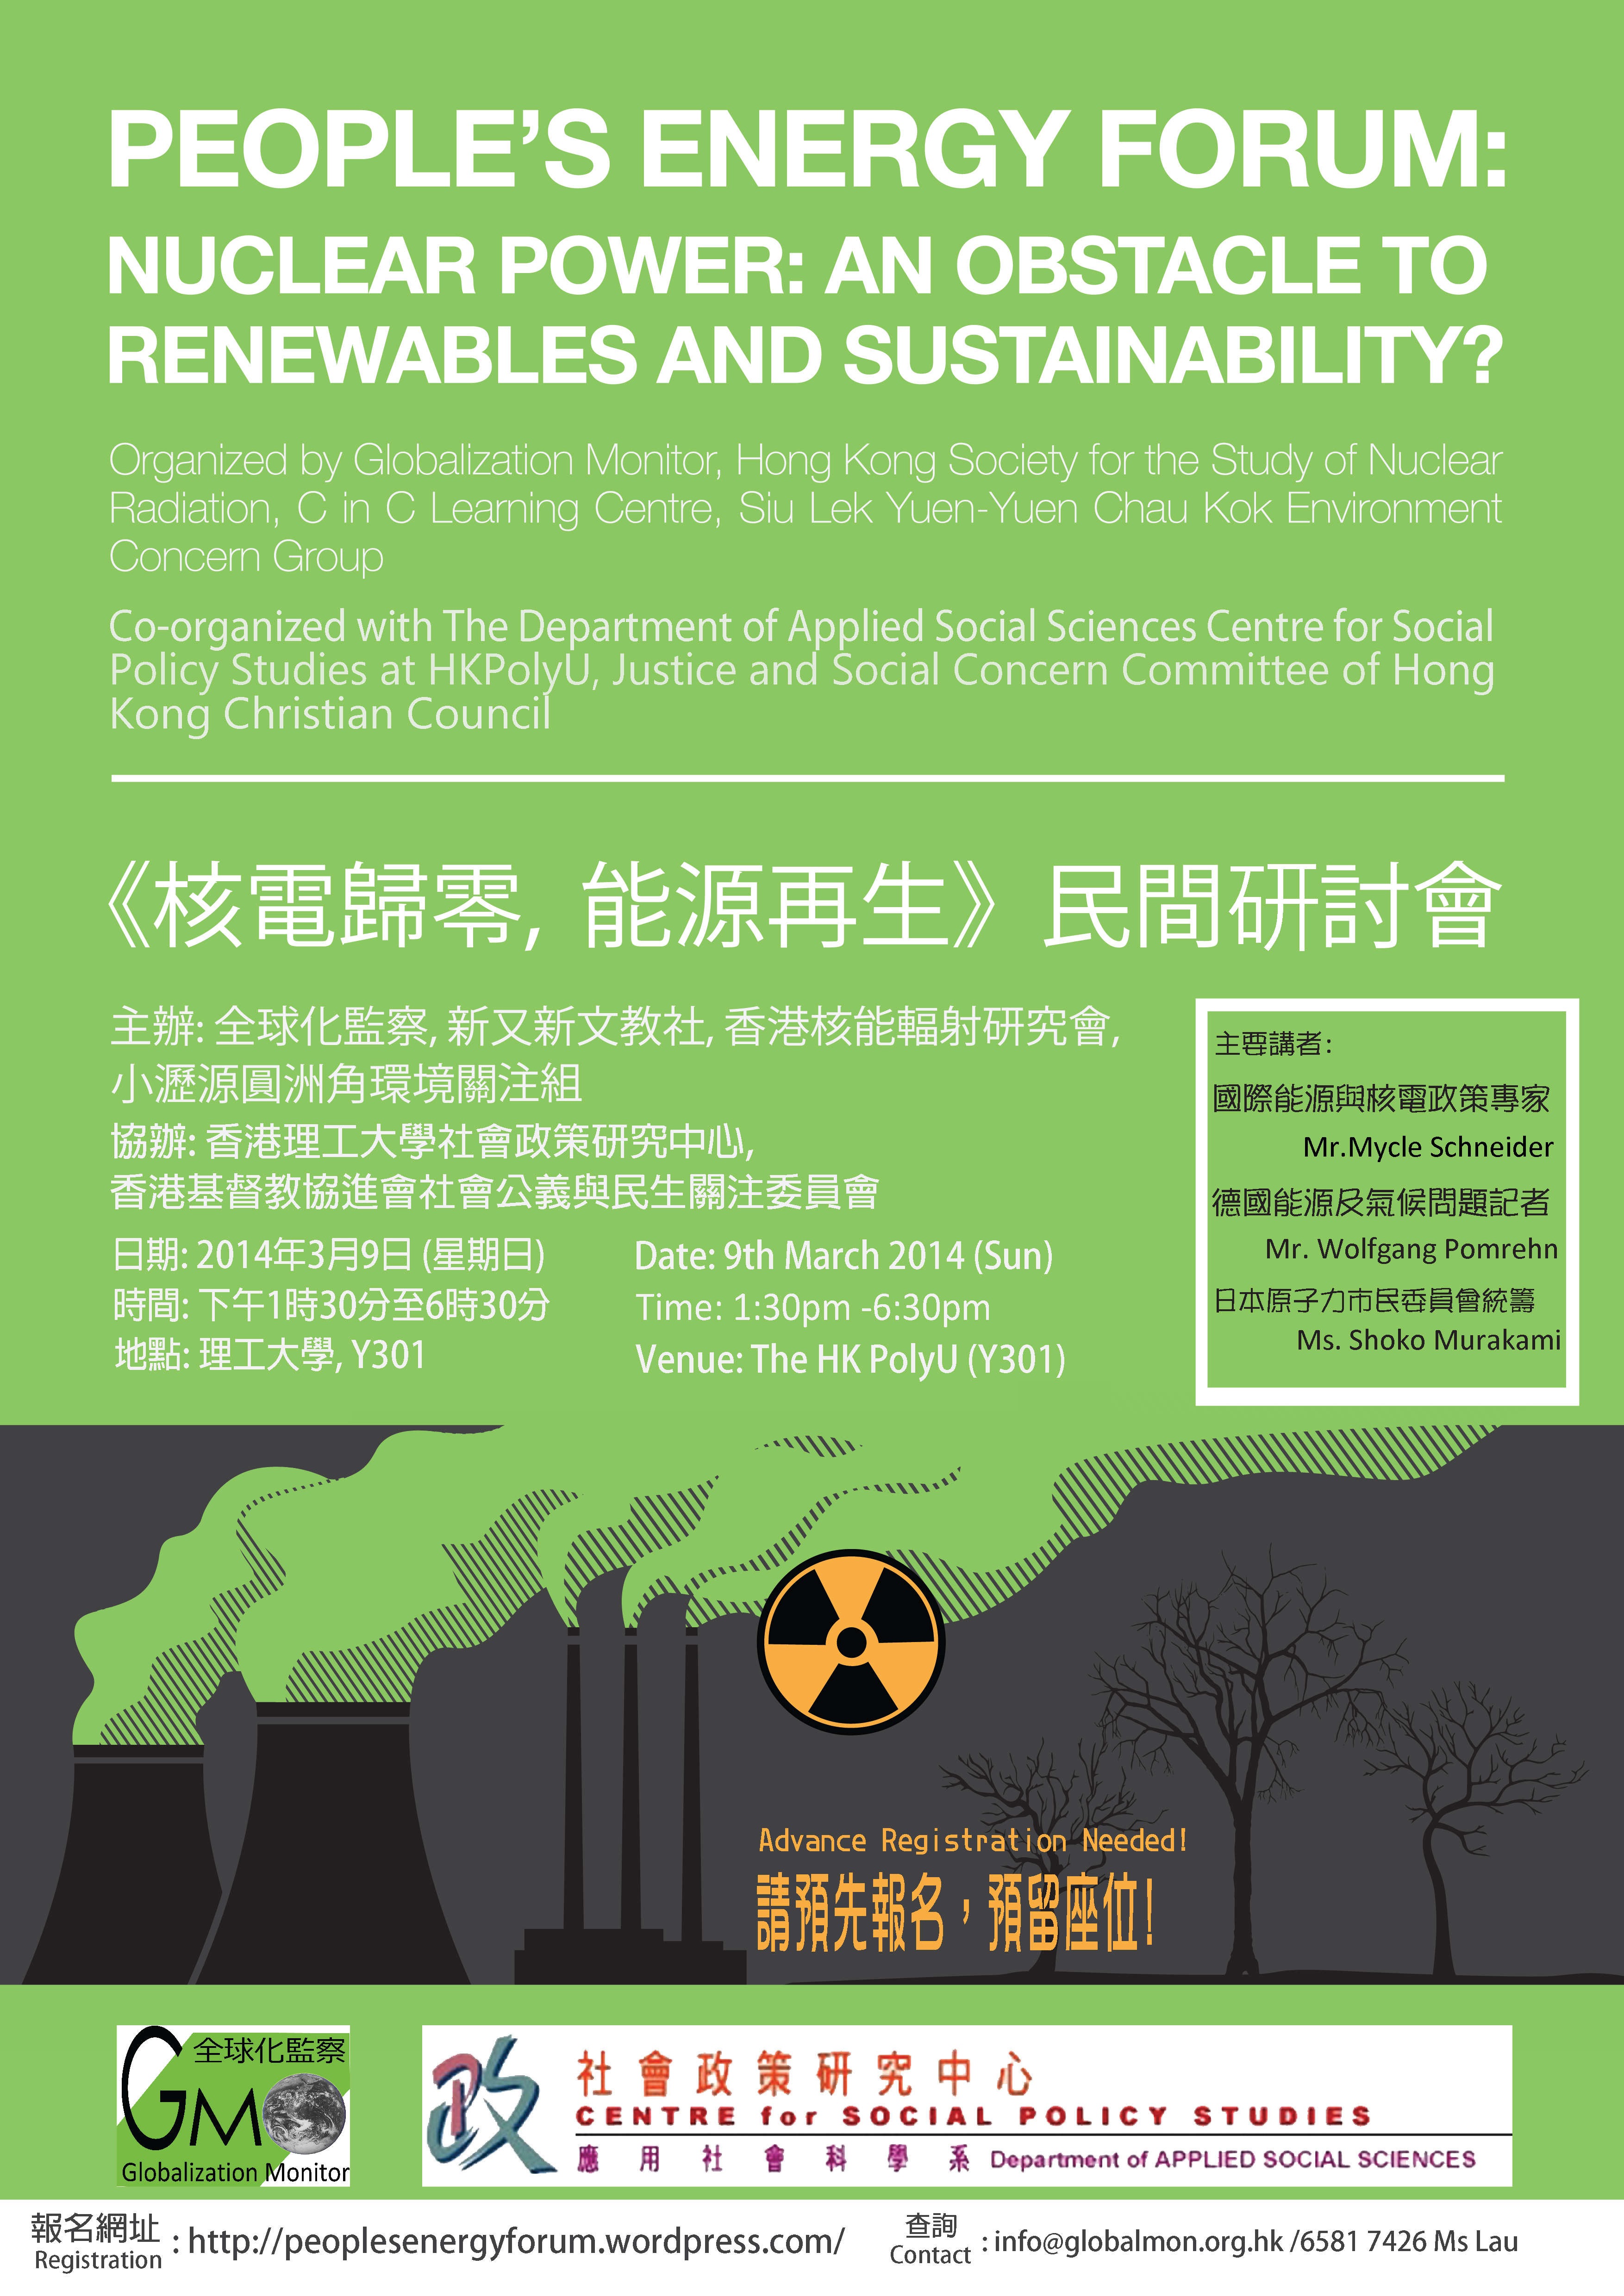 People's Energy Forum: Nuclear Power: an Obstacle to Renewables and Sustainability?